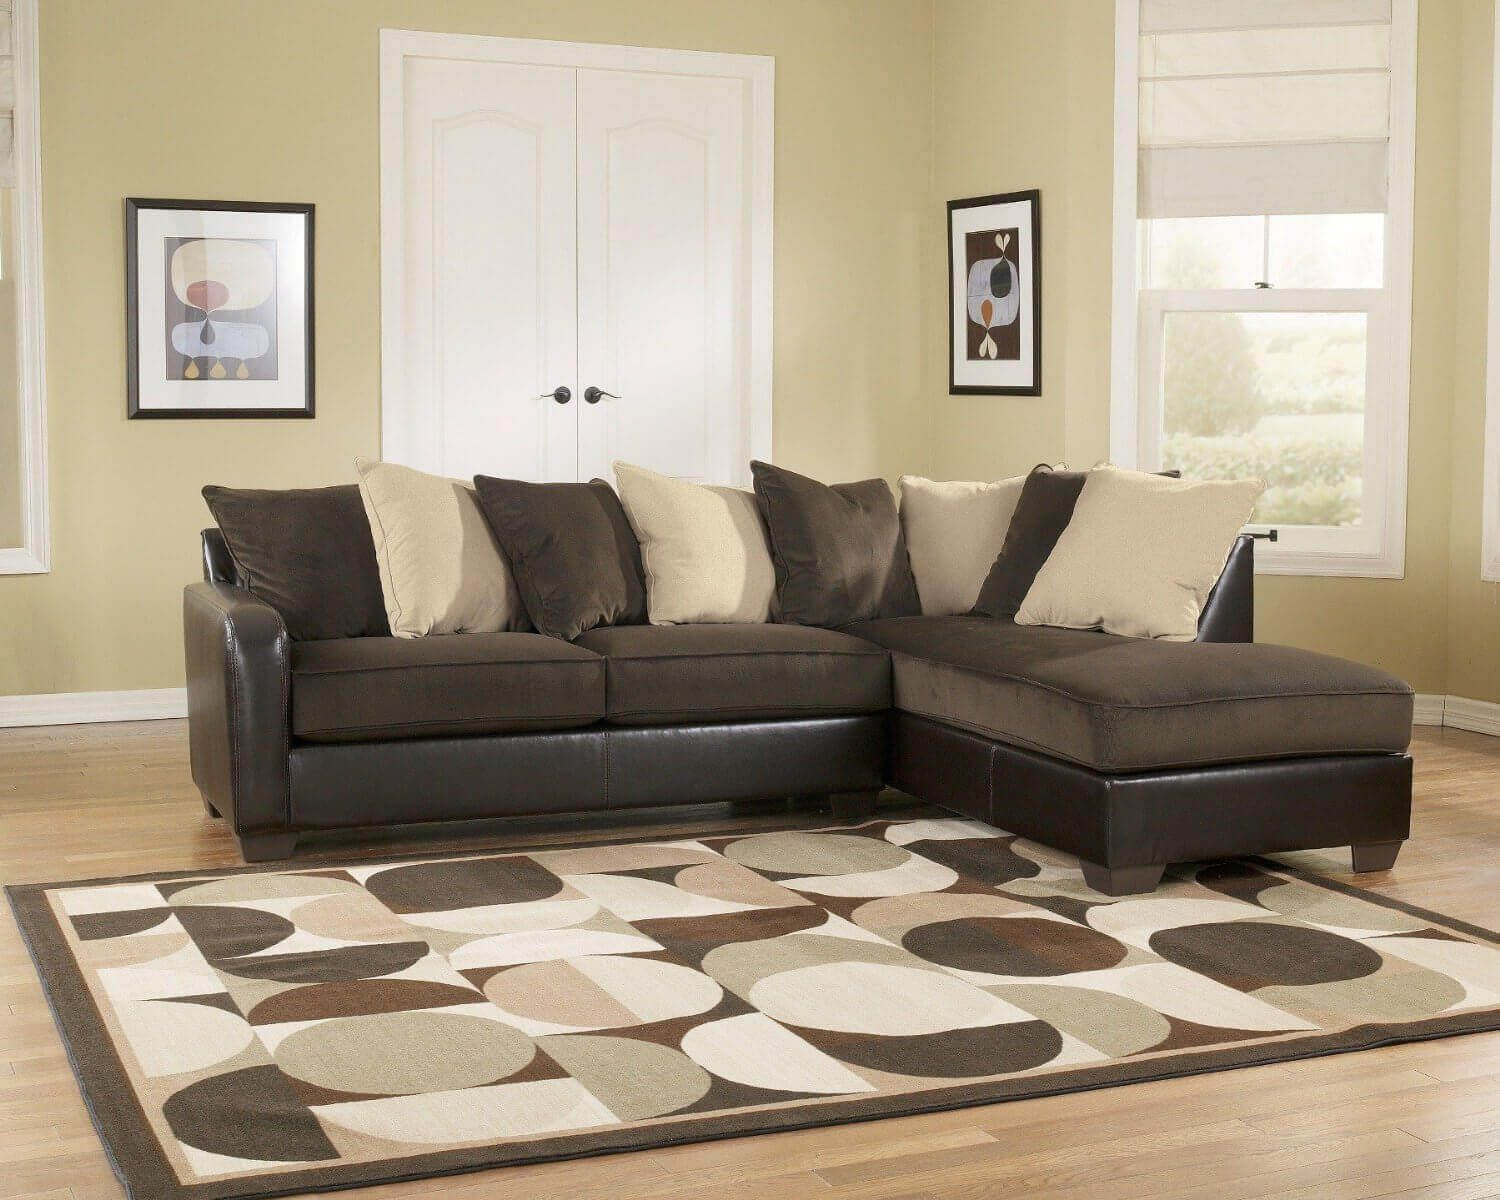 Genial Ashley Furniture Customer Service Number   Modern Style Furniture Check  More At Http://